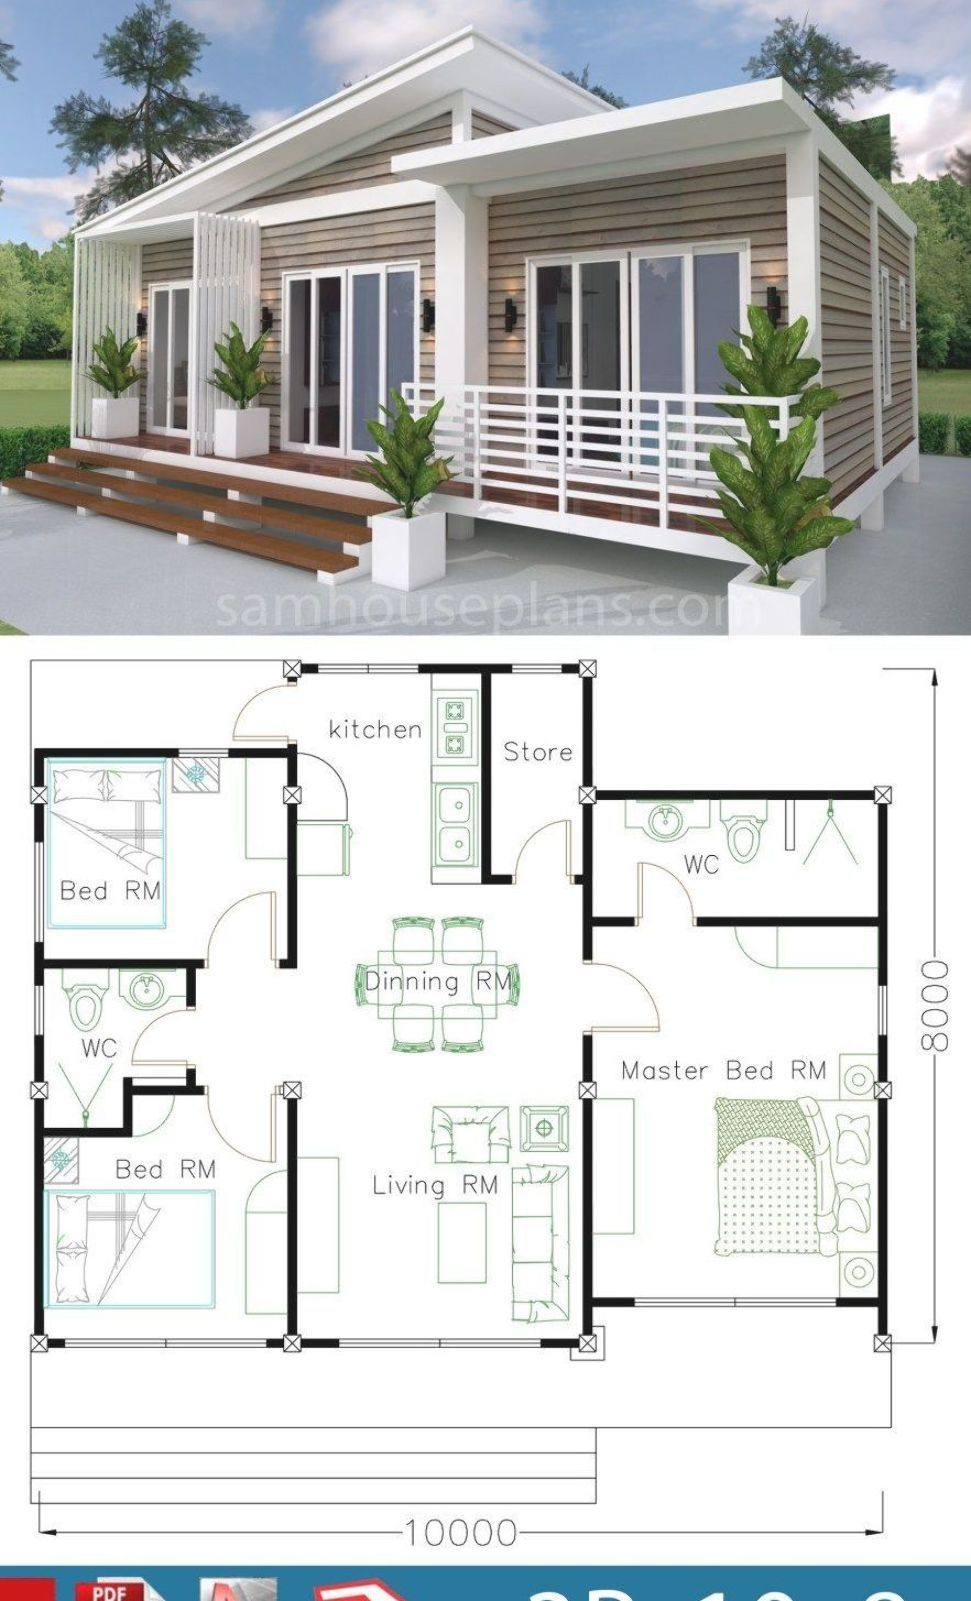 House Plans 10x8m With 3 Bedrooms Sam House Plans Small Beach House Plans Beach House Floor Plans Small Beach Houses